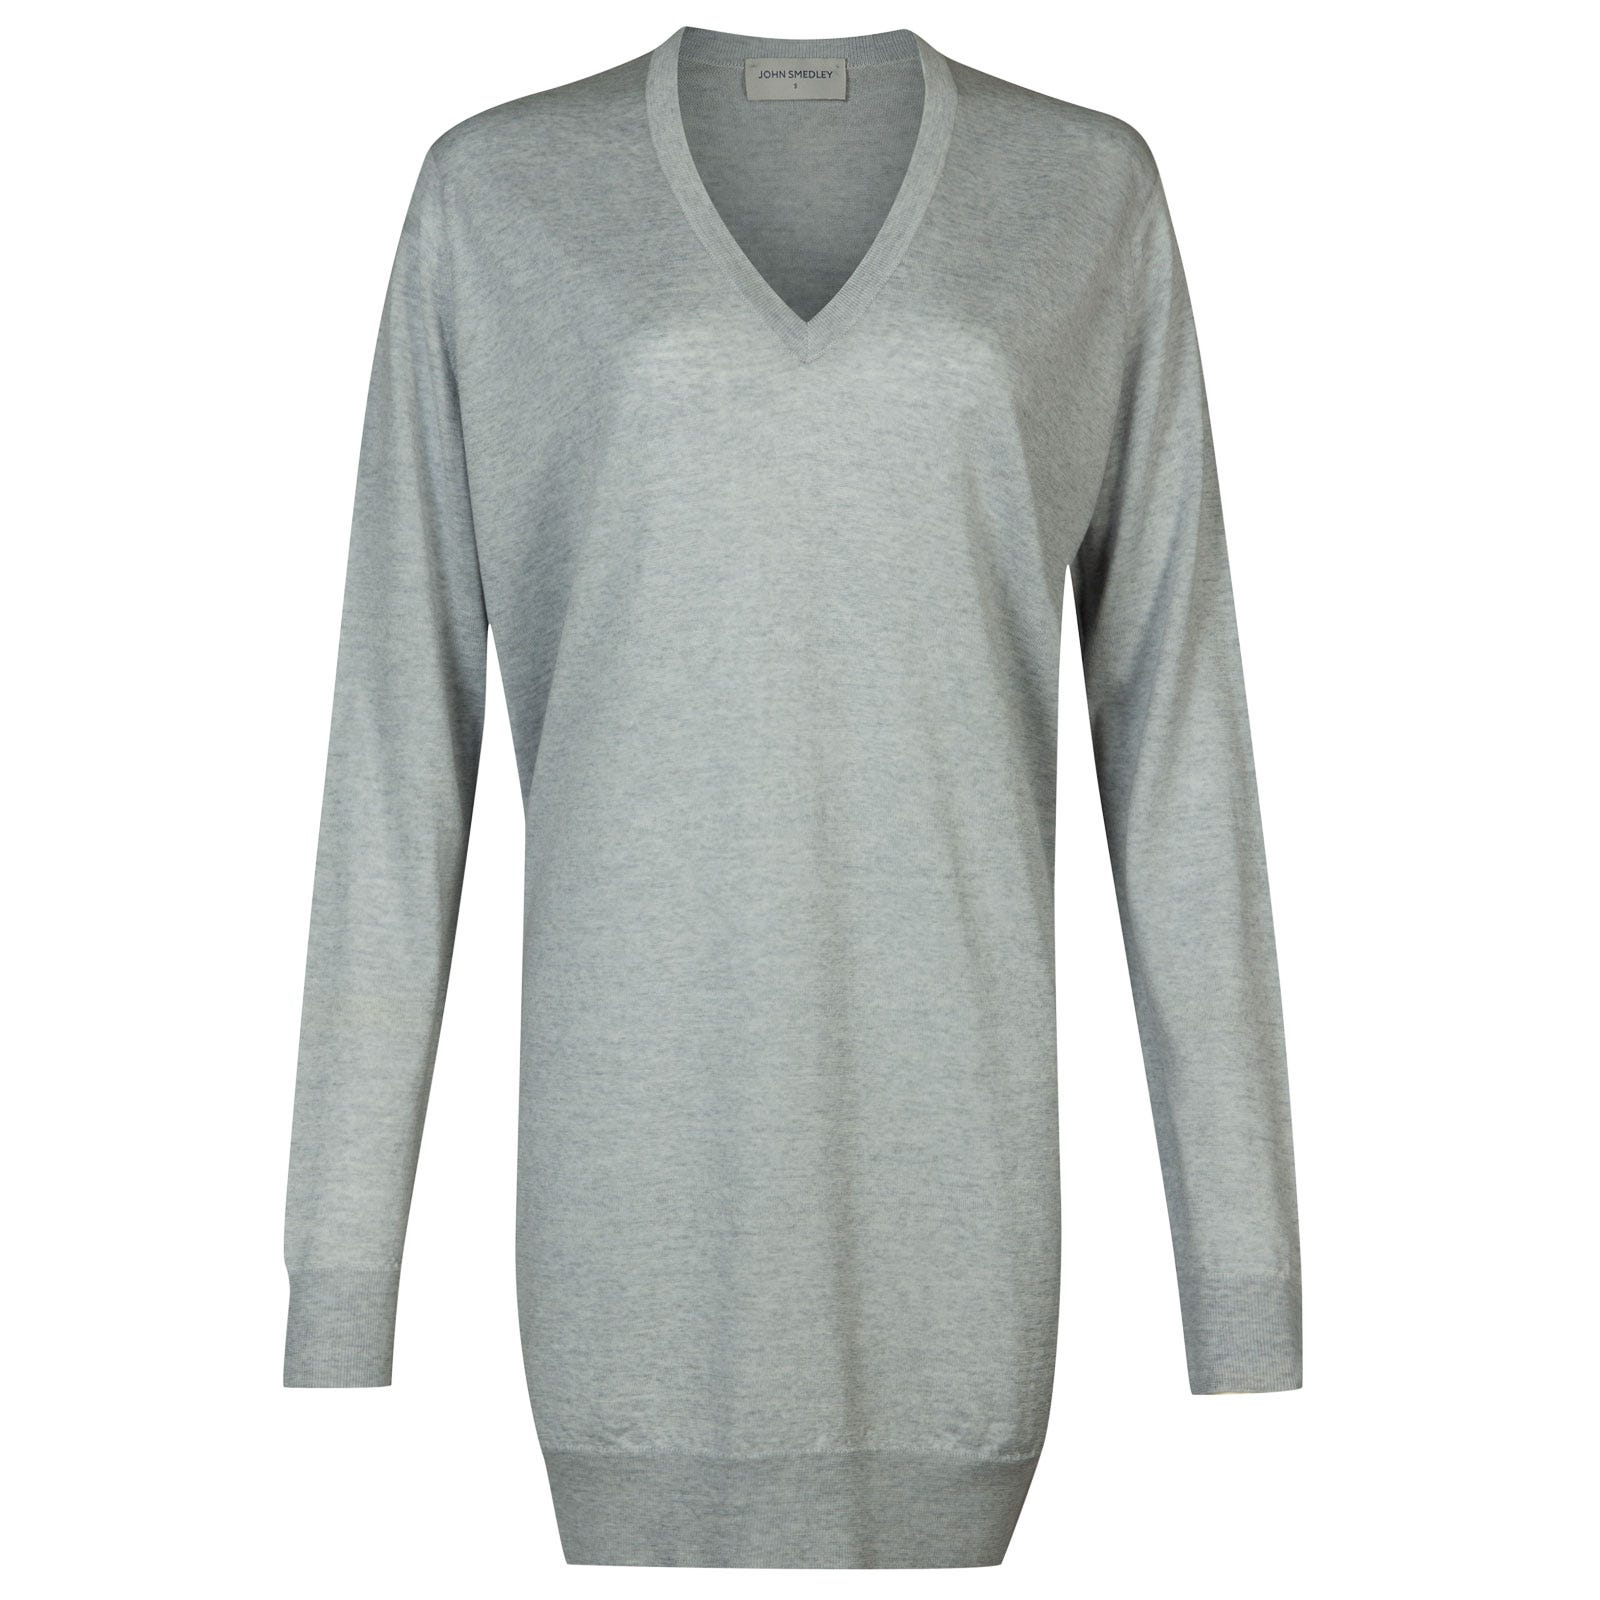 John Smedley Alma Merino Wool Sweater in Bardot Grey-M